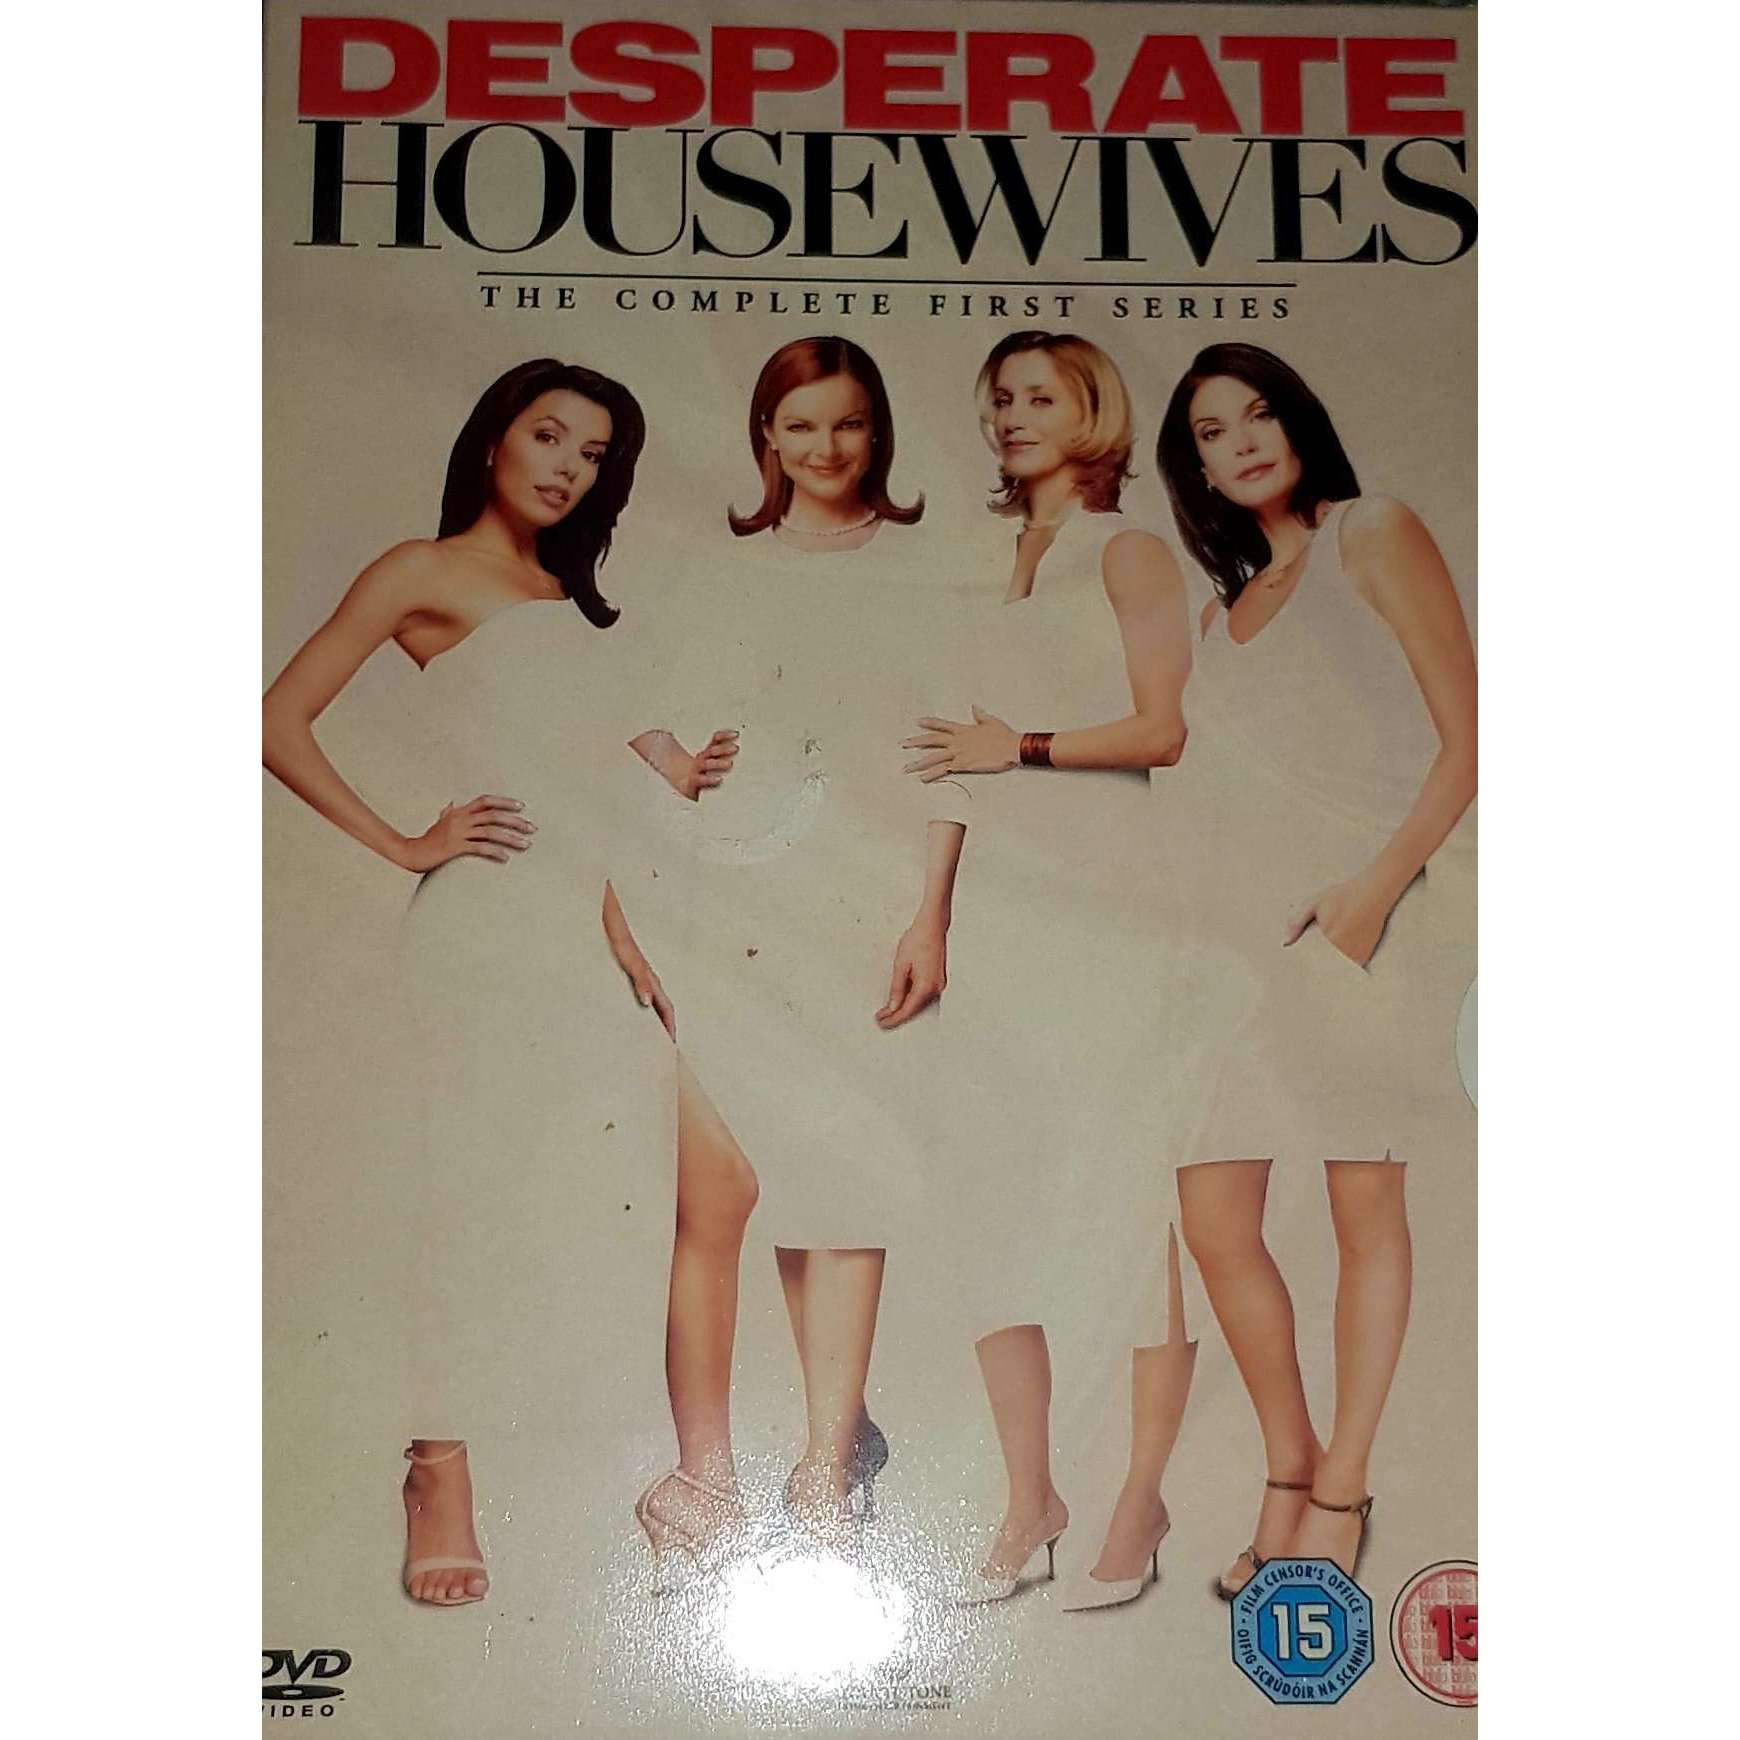 Desperate Housewives DVD Boxset - Season 1 (PREOWNED) (15)